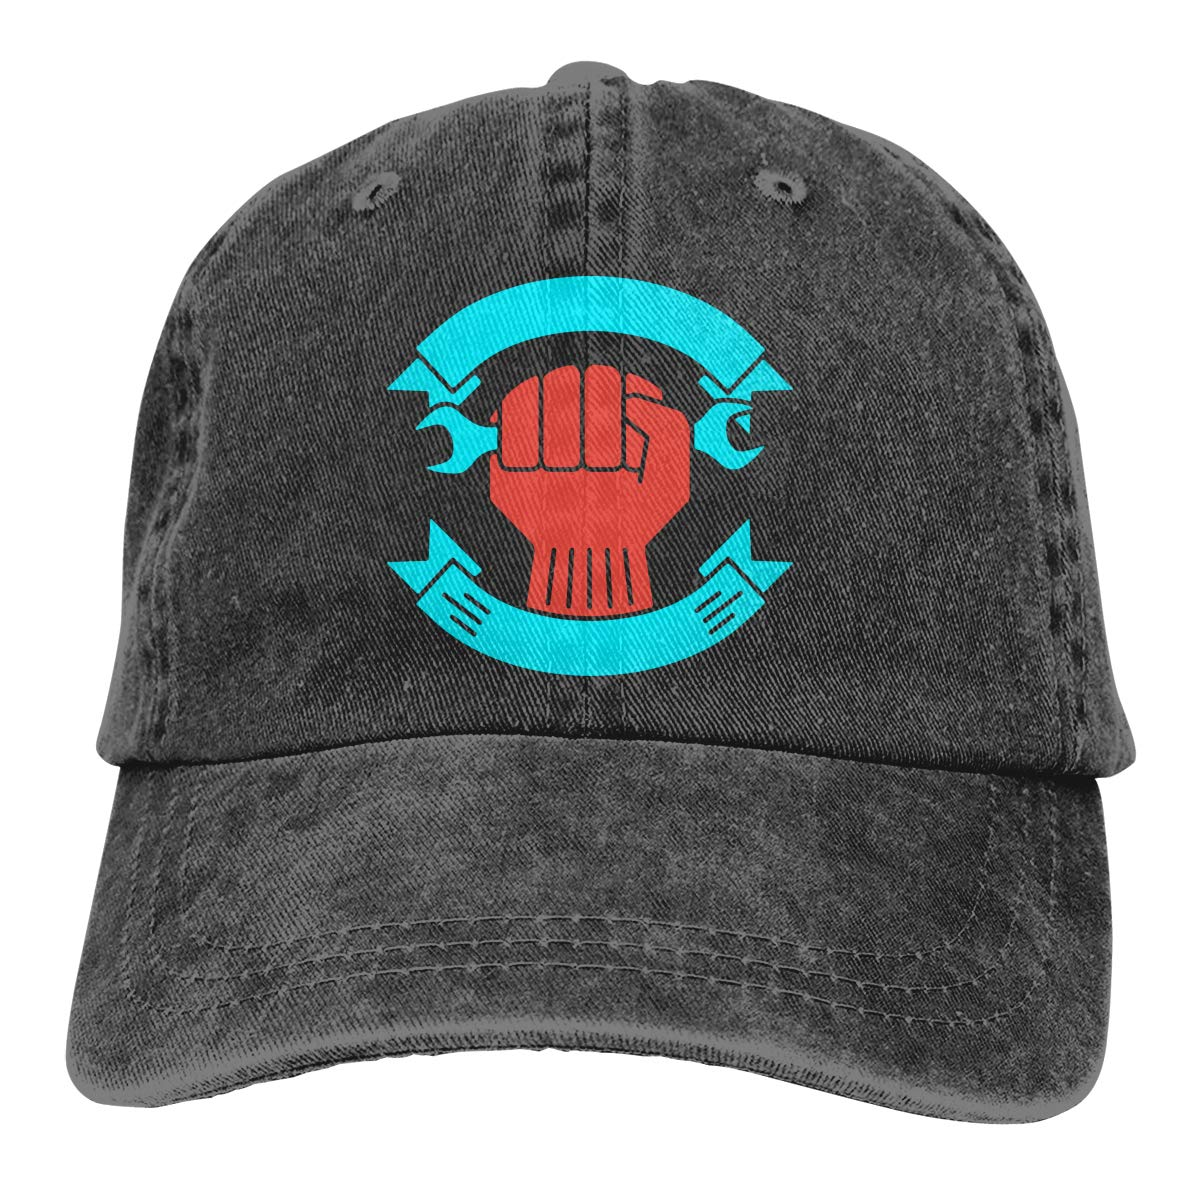 Q89 Unisex Adult Its Labor Day Trendy Cowboy Hat Adjustable Trucker Hats